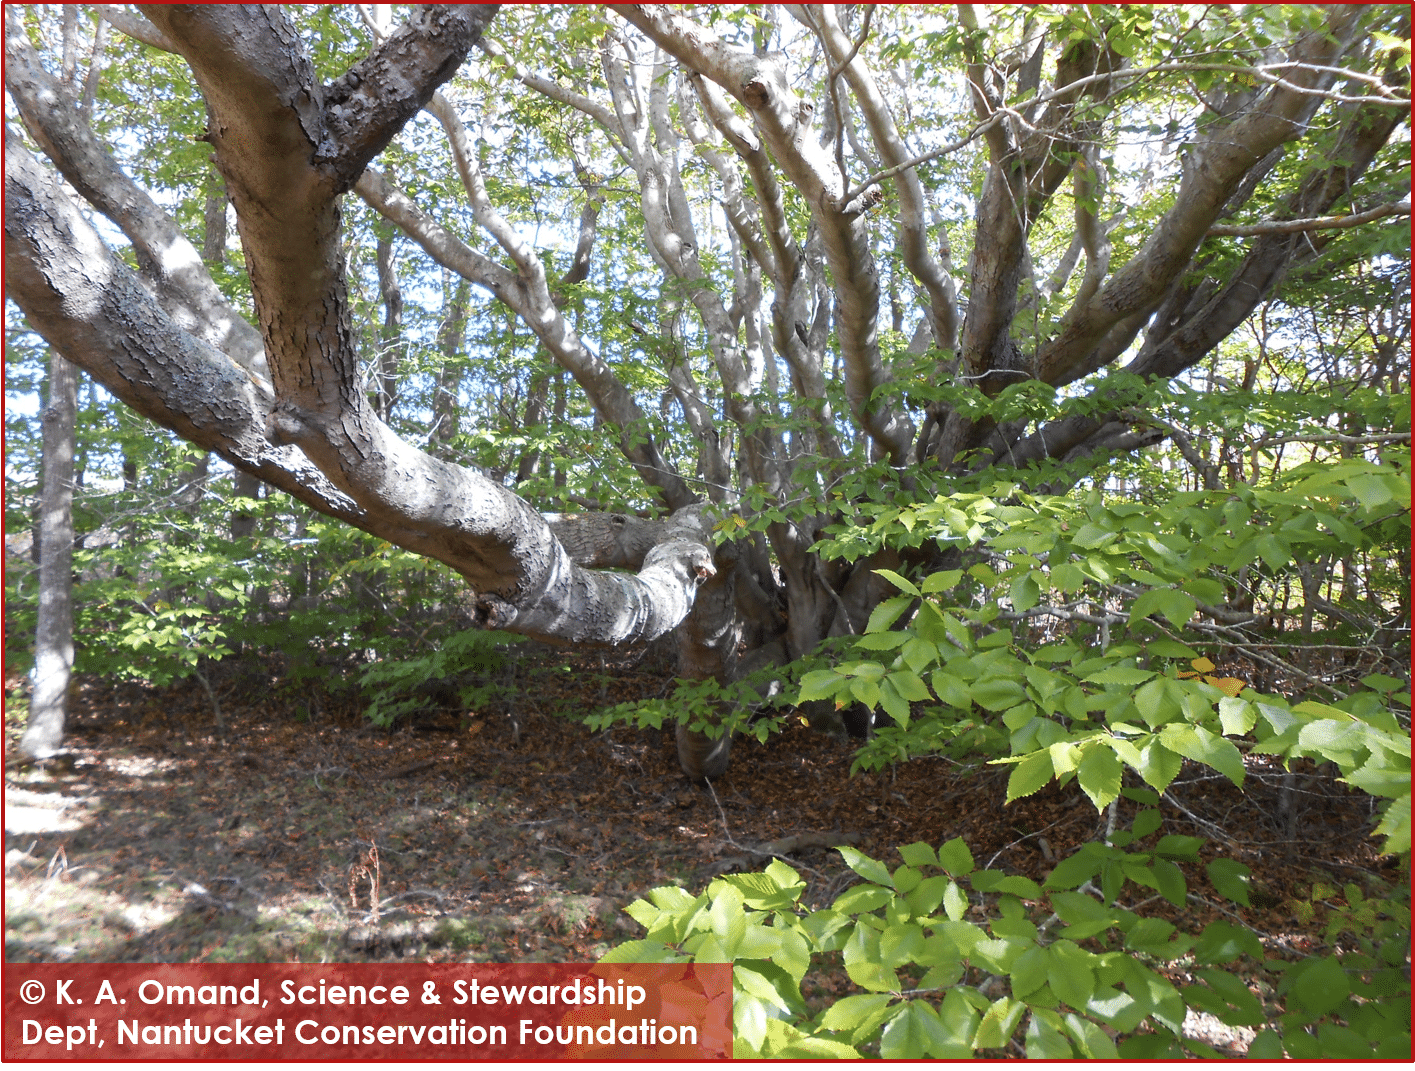 Ganesh extends a trunk out over a vernal pool to maximize its sun exposure while remaining short.